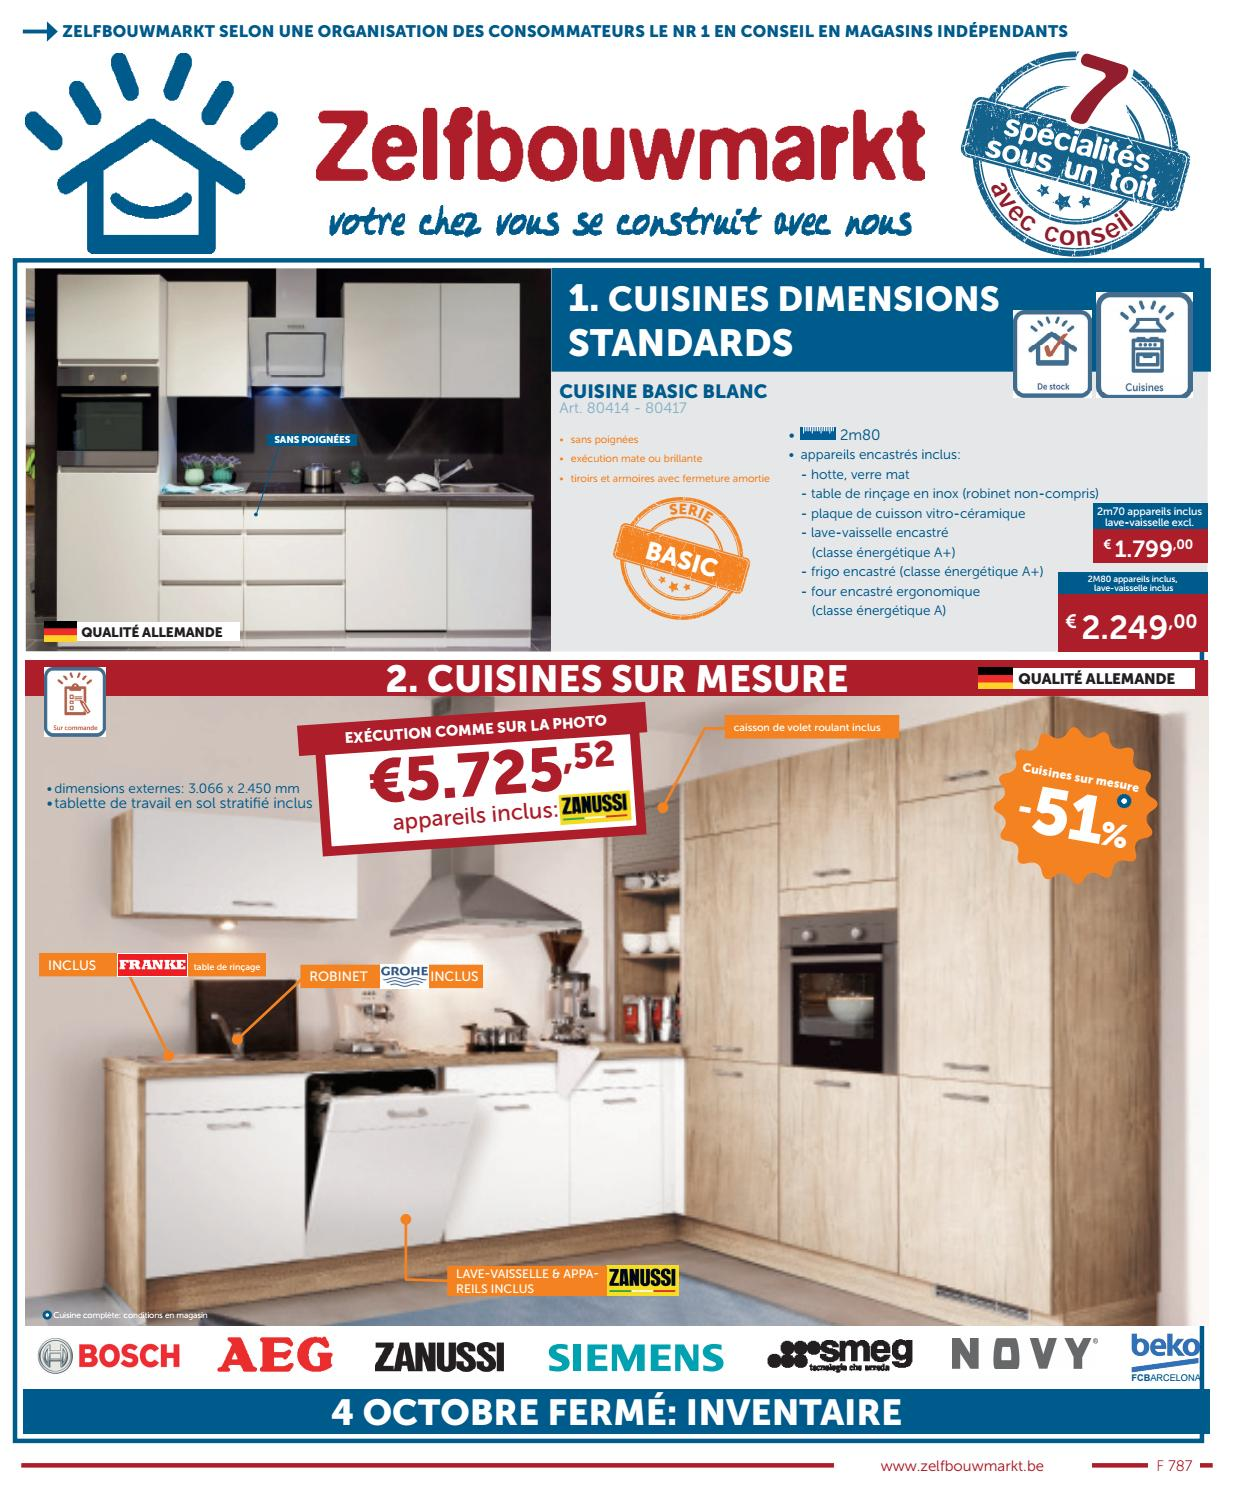 Fr f787 0 by zelfbouwmarkt issuu for Porte ame tubulaire